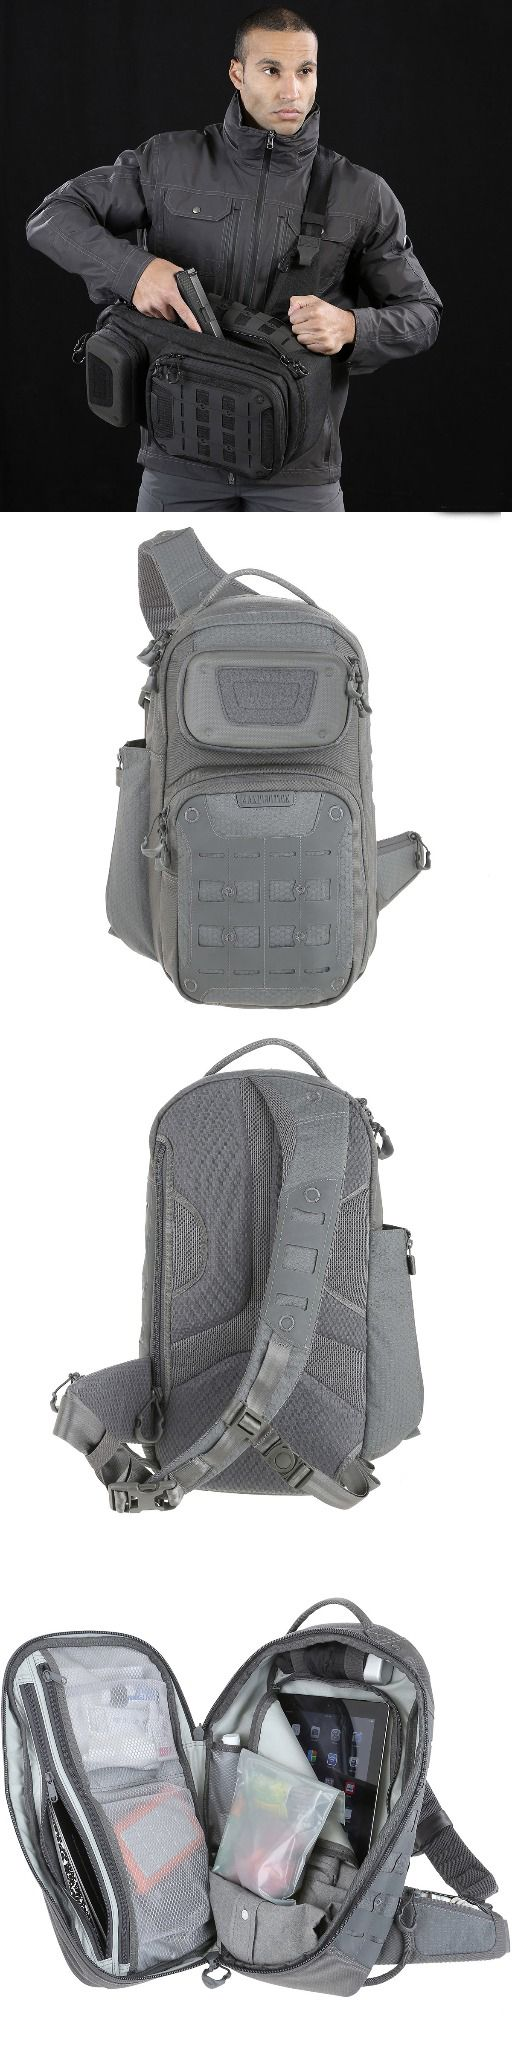 AGR™ Advanced Gear Research: GRIDFLUX™ Sling Pack by Maxpedition. .  A fleece-lined EVA pocket is also featured on the front of the pack to store fragile items such as sunglasses or a point-and-shoot camera.